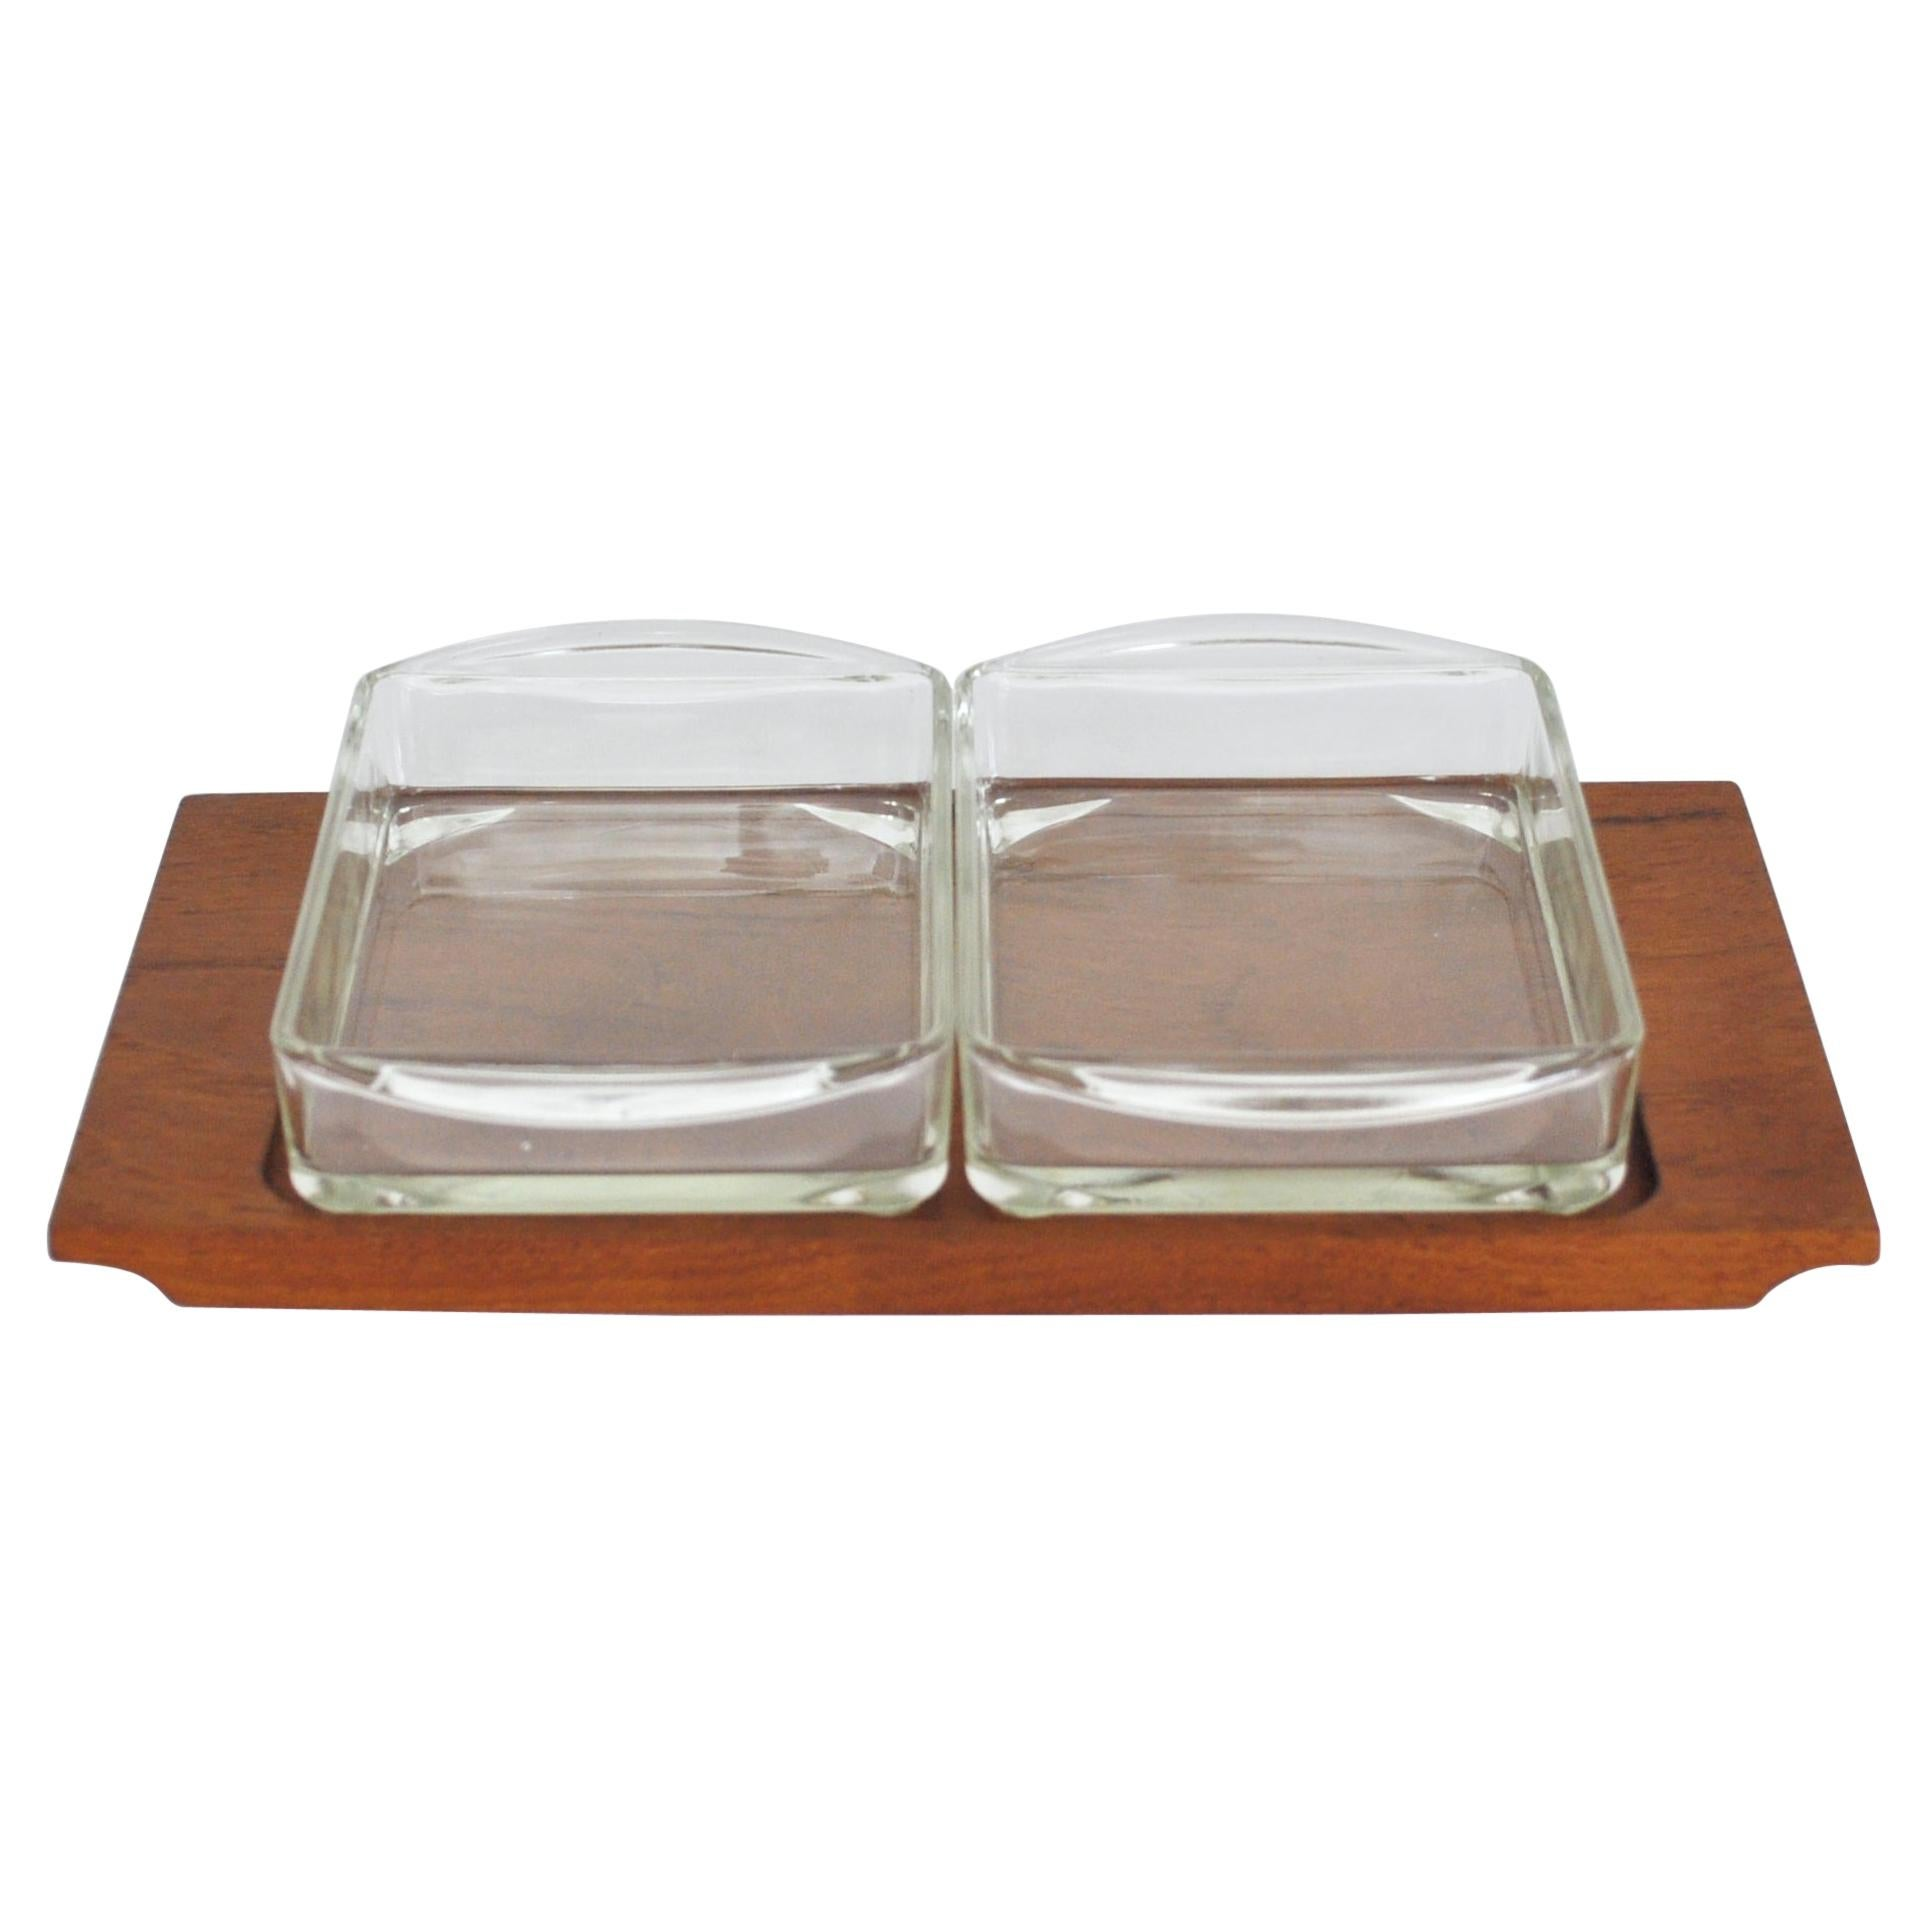 Danish Modern Teak Serving Tray with Glass Bowls by Wiggers, Denmark, 1960s